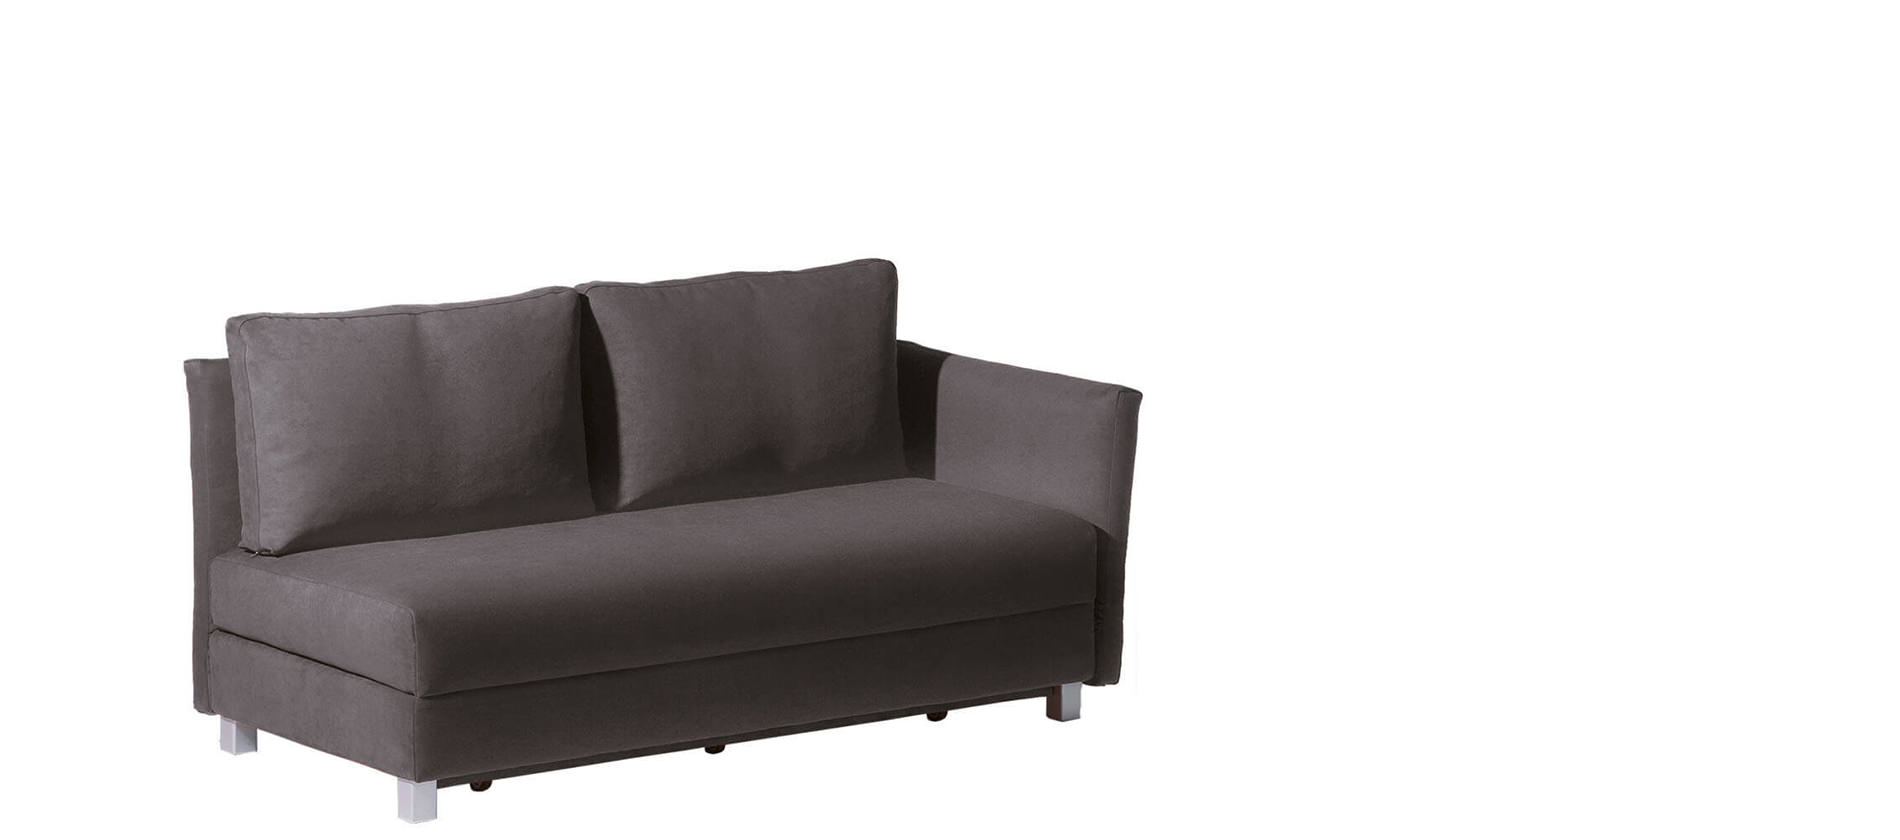 schlafsofa giorgio von franz fertig relaxen leicht gemacht. Black Bedroom Furniture Sets. Home Design Ideas